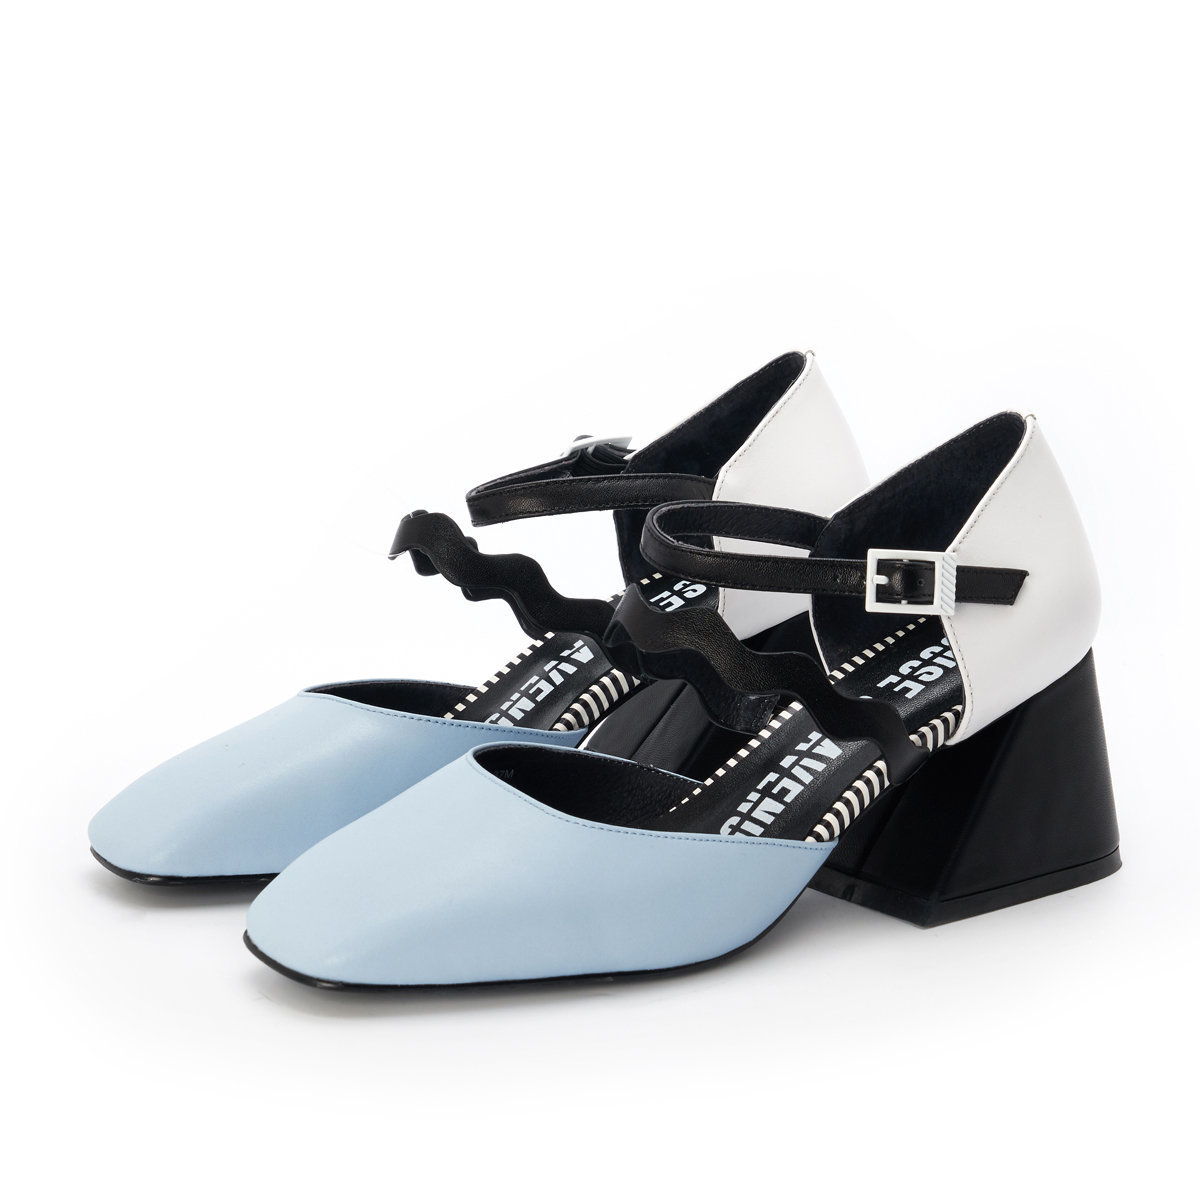 HOUSE OF AVENUES - POWER POSE ANKLE STRAP PUMP - LIGHT BLUE - 5266